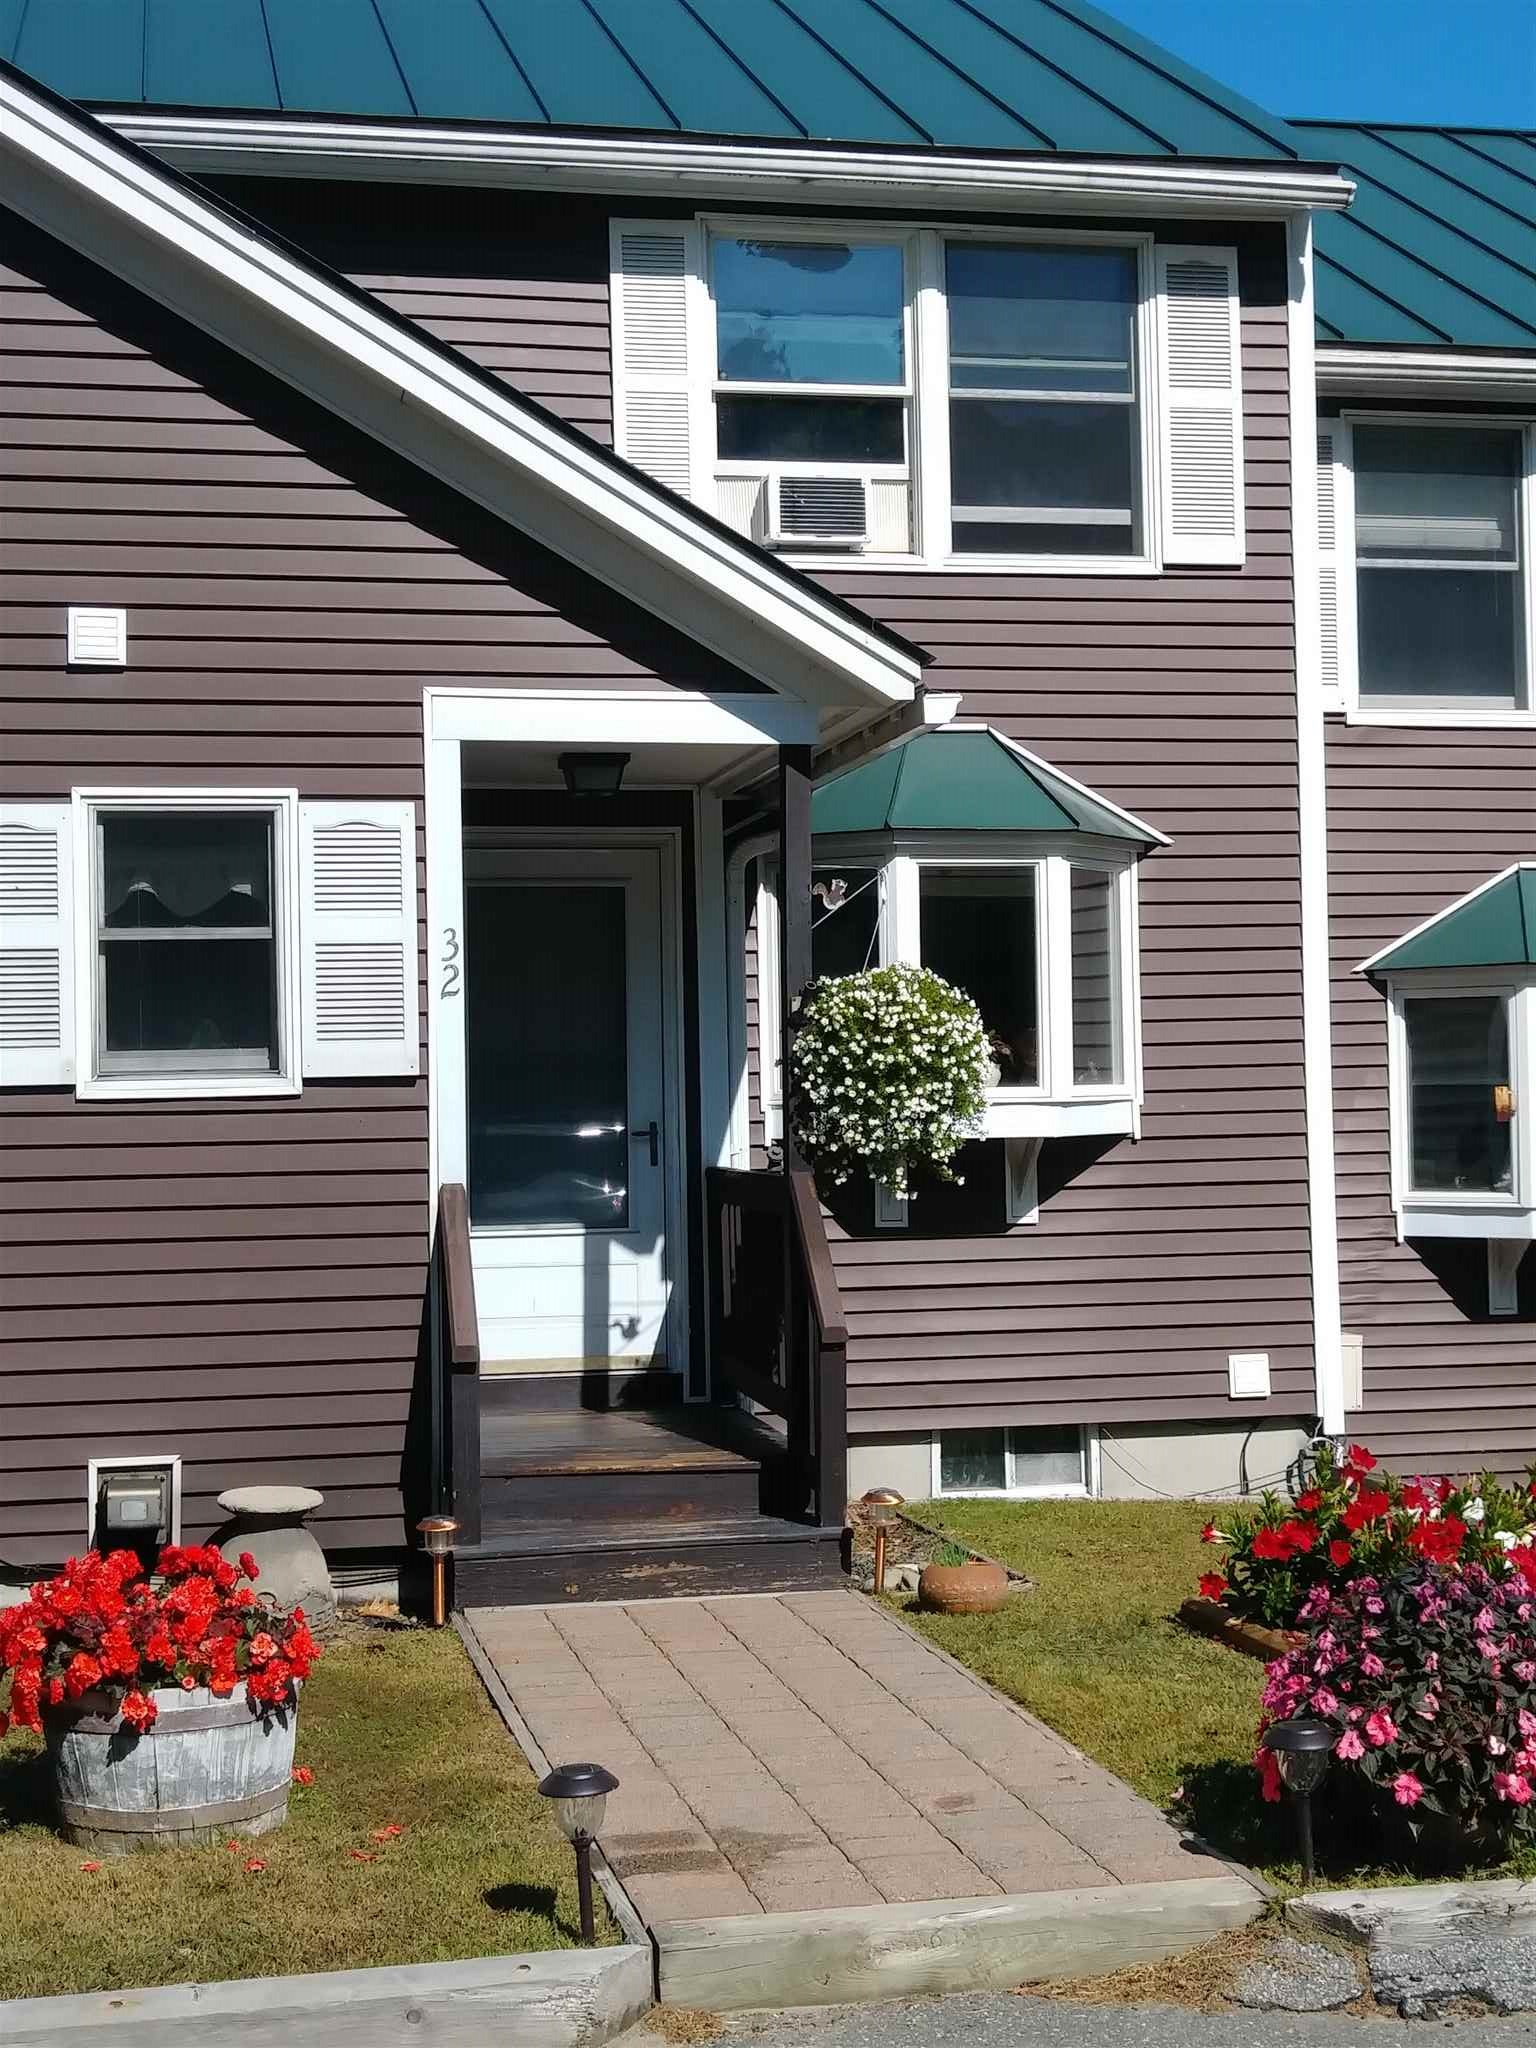 Claremont NH 03743 Condo for sale $List Price is $139,900